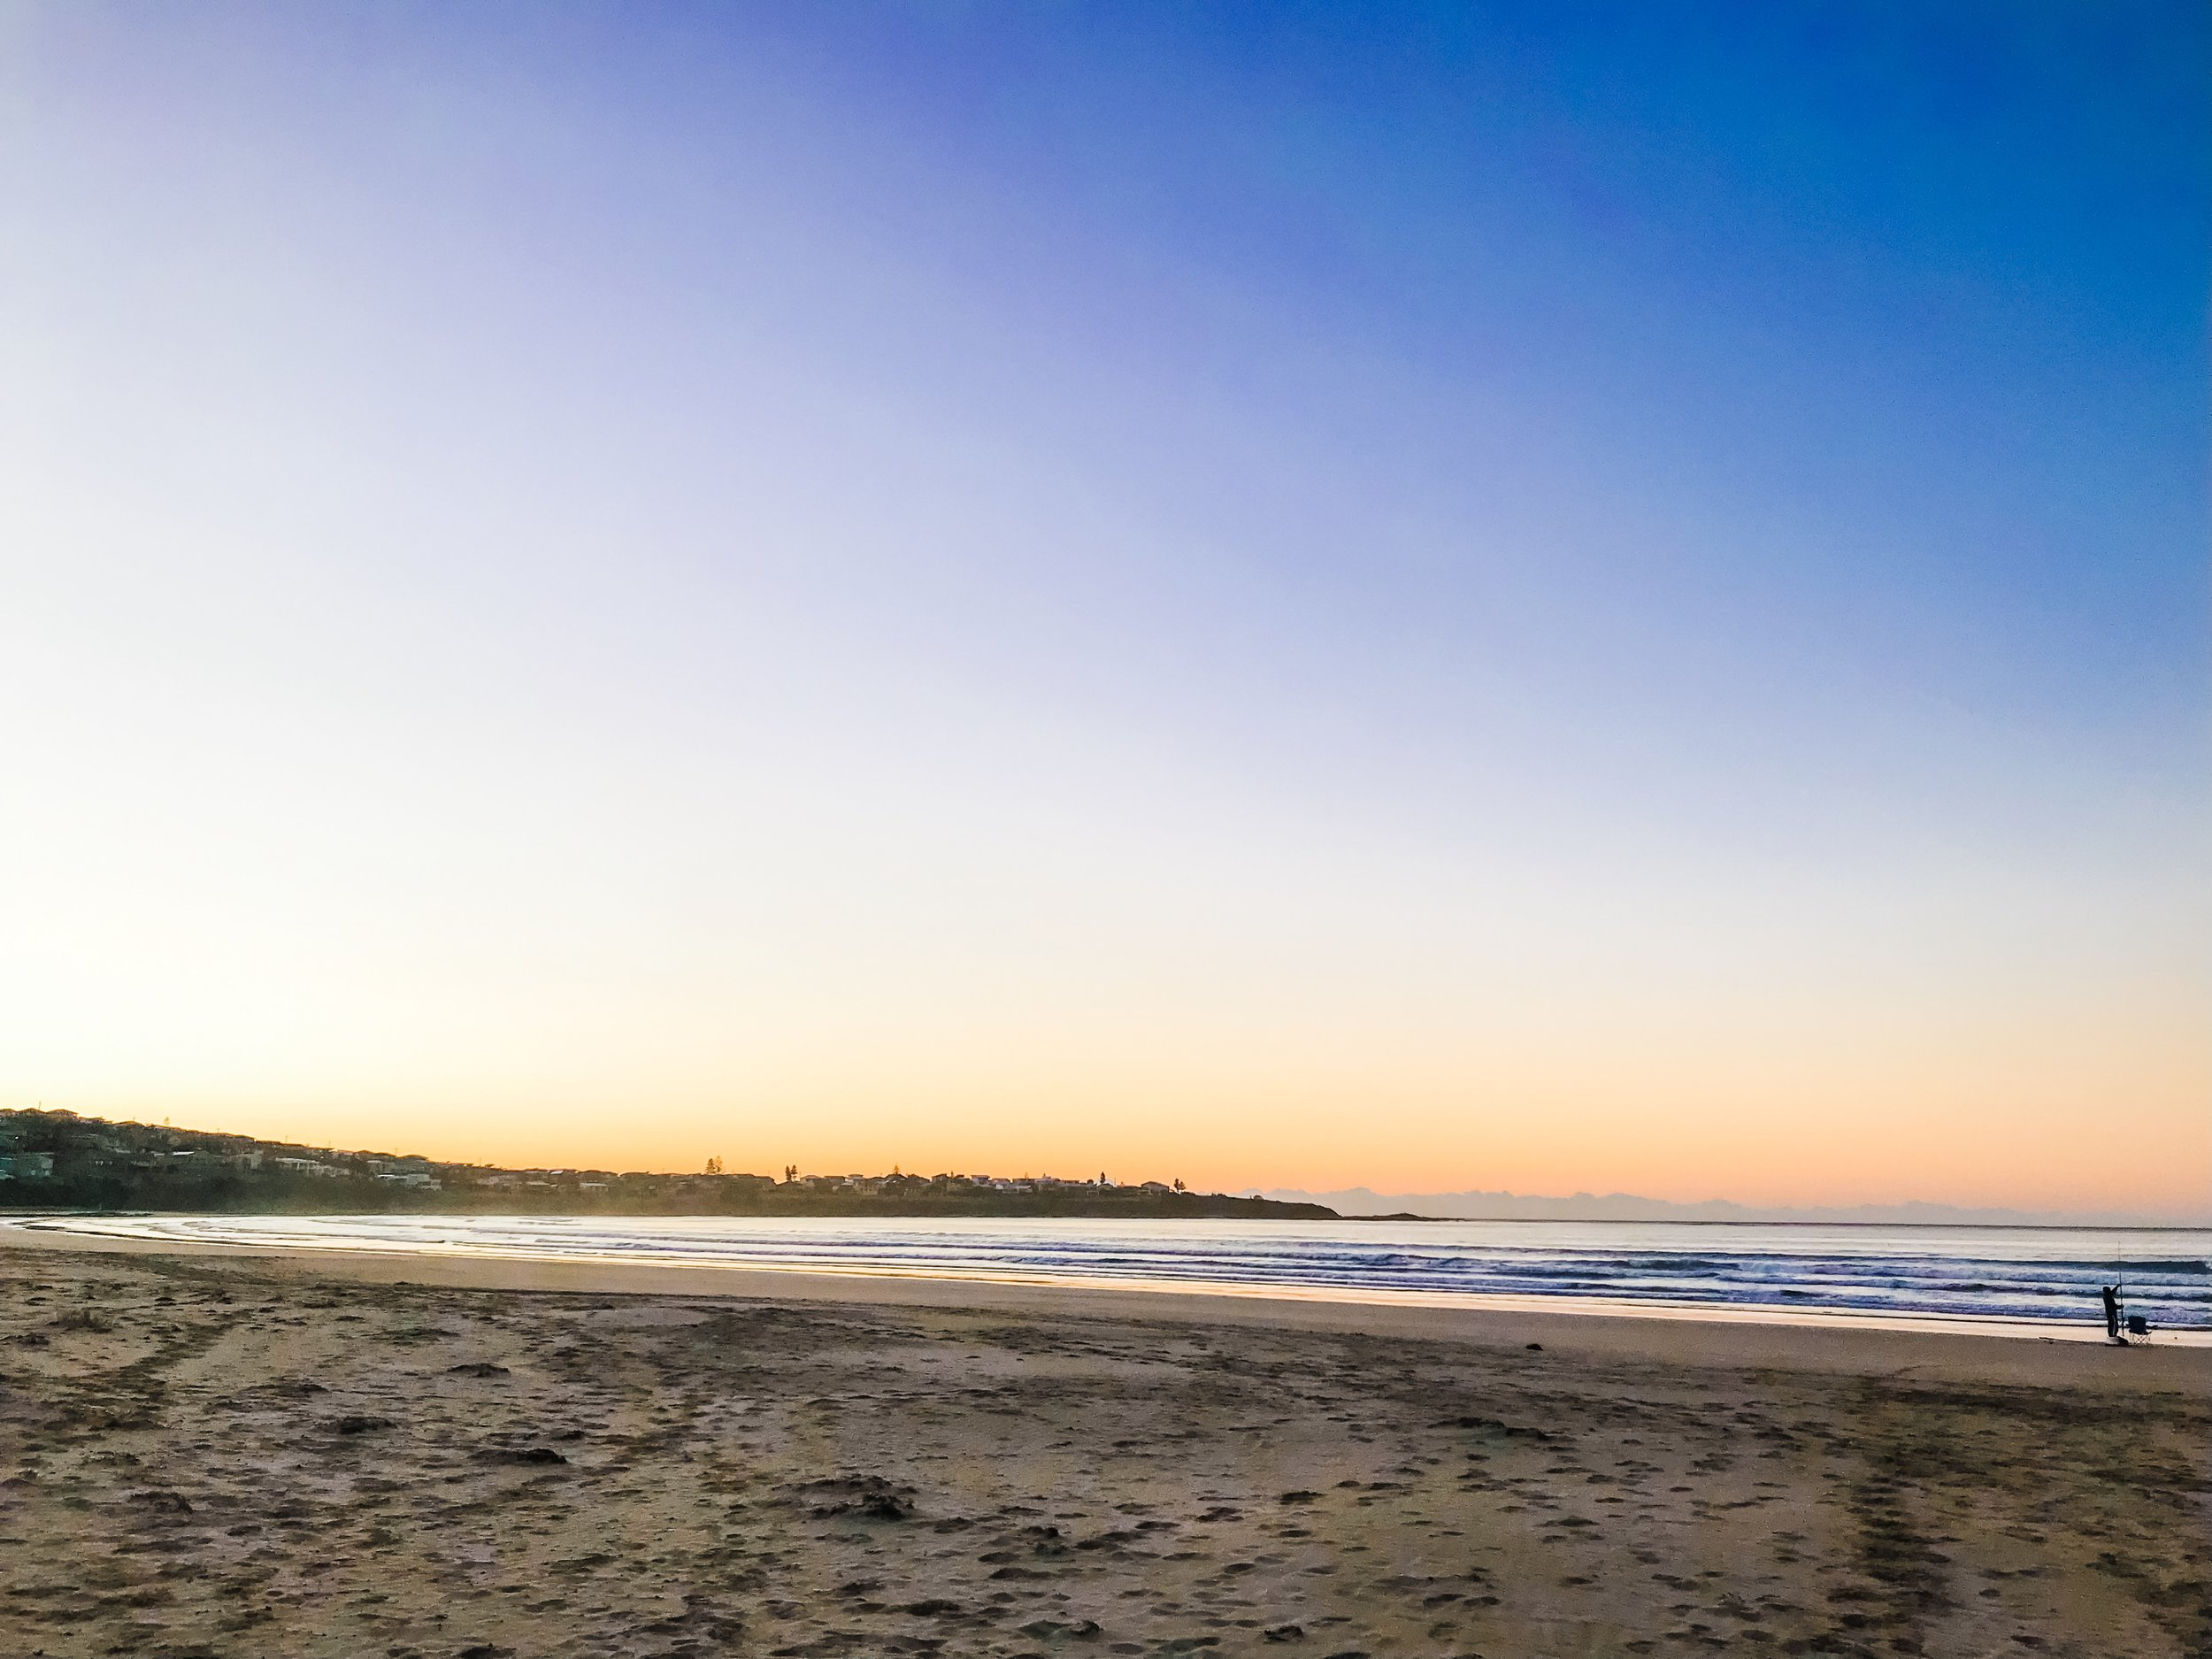 Sunrise on 7 mile beach (why miles and not km, the world may never know).